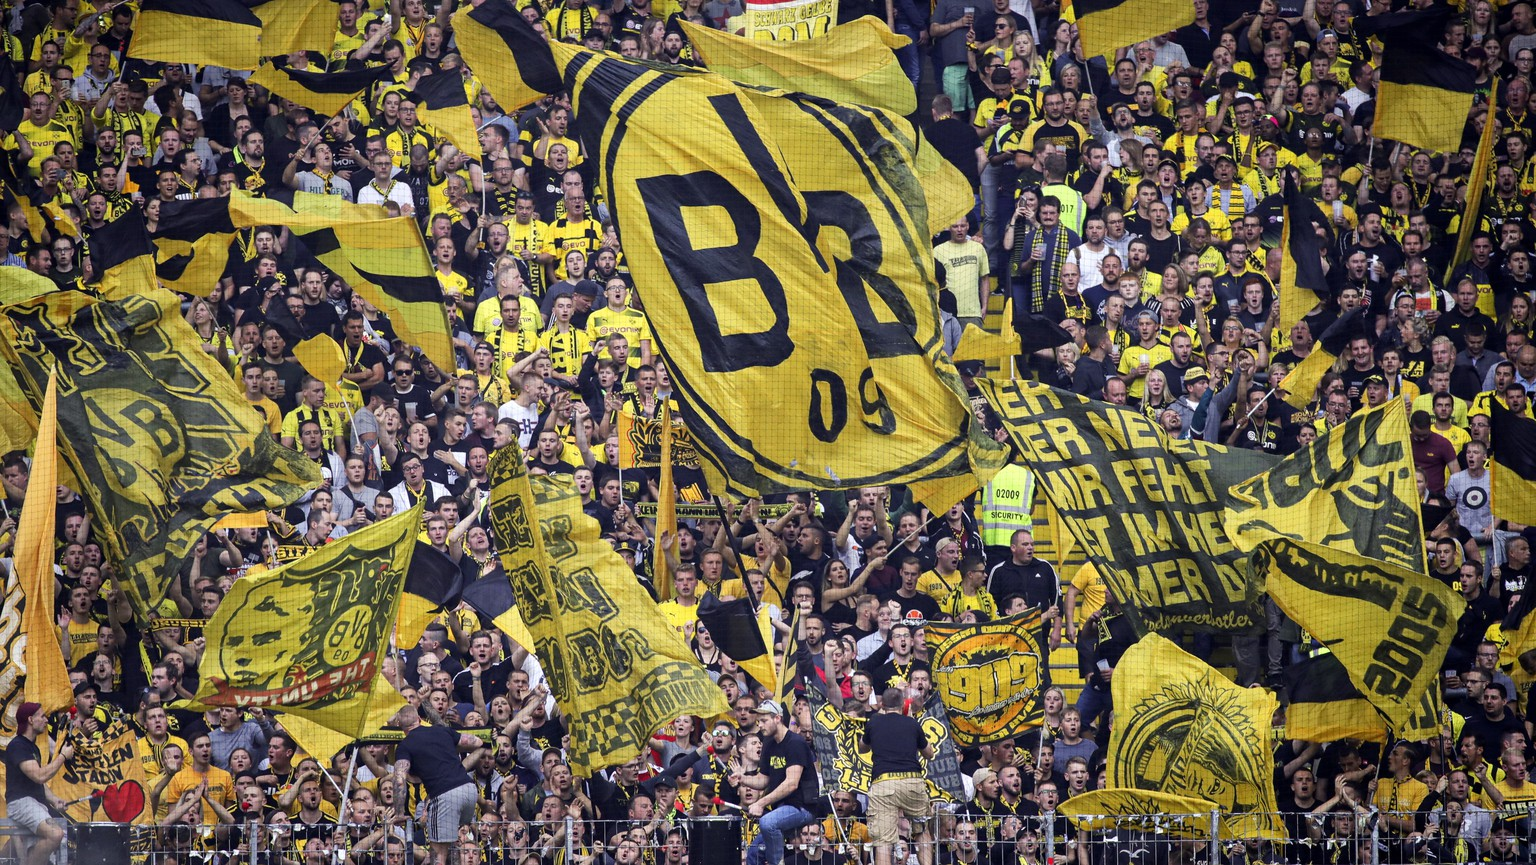 epa07861769 Fans of Borussia Dortmund cheer prior to the German Bundesliga soccer match between Eintracht Frankfurt and Borussia Dortmund  in Frankfurt Main, Germany, 22 September 2019.  EPA/ARMANDO BABANI CONDITIONS - ATTENTION: The DFL regulations prohibit any use of photographs as image sequences and/or quasi-video